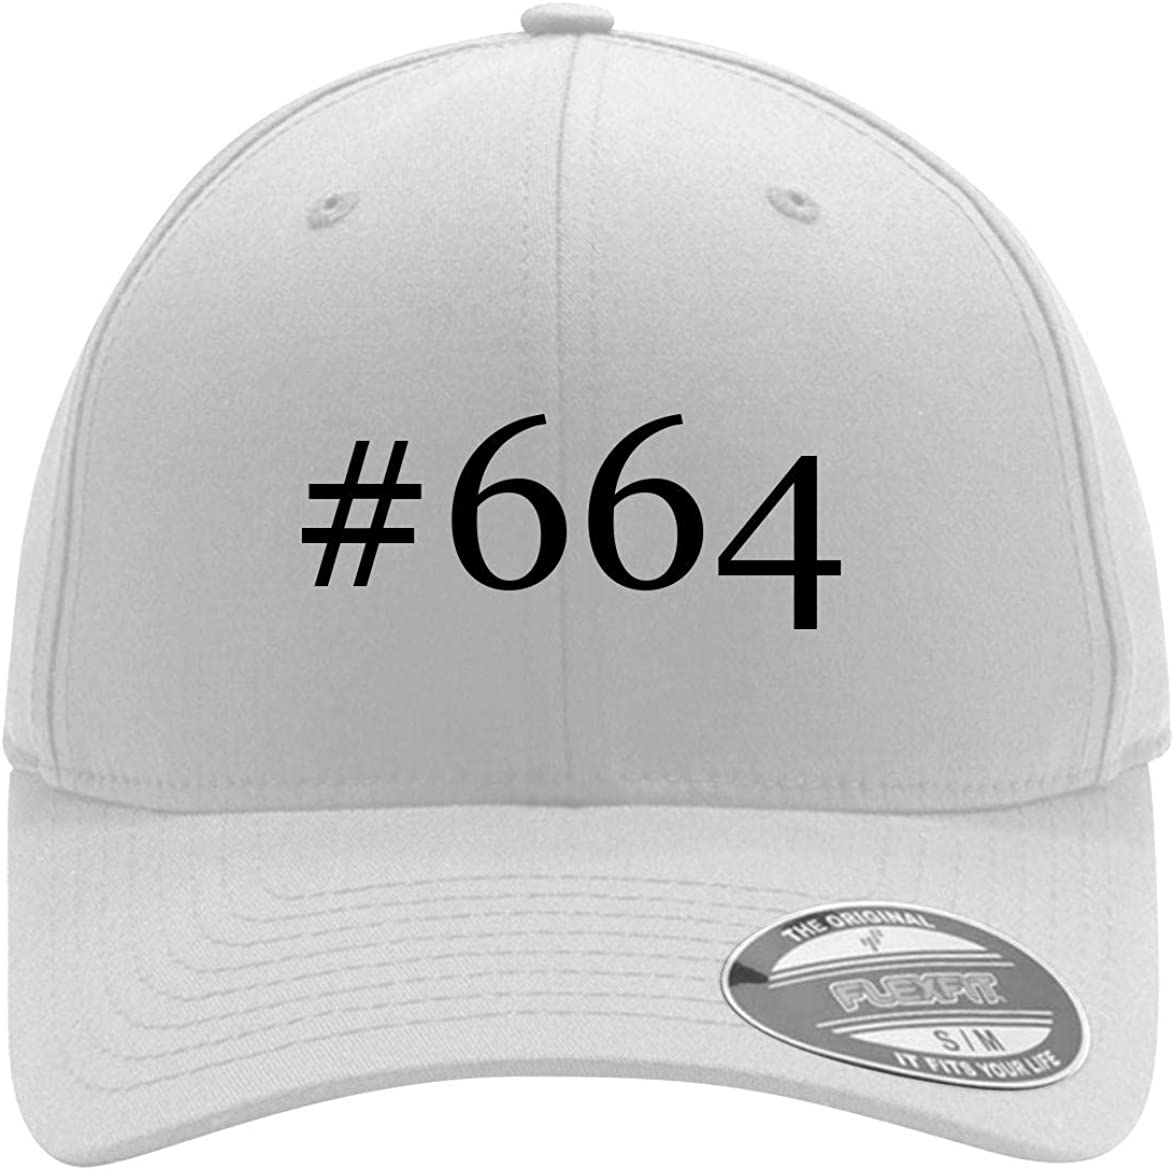 #664 - Adult Men's Hashtag Flexfit Baseball Hat Cap 61LDjYewkHL